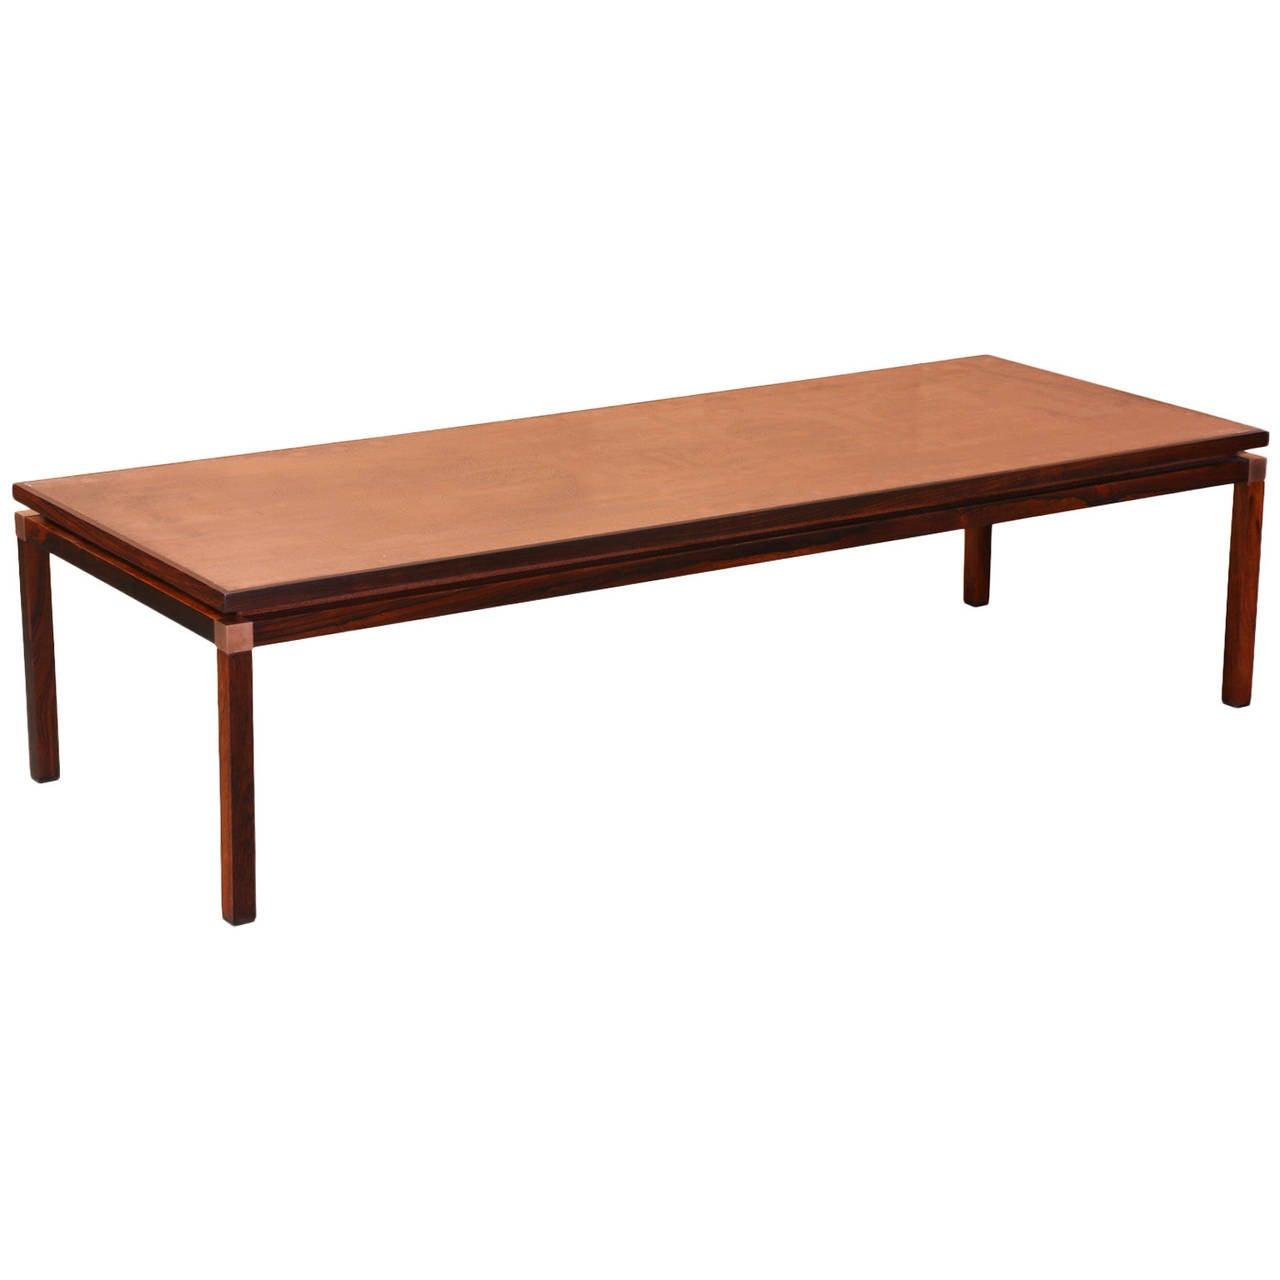 Midcentury Rosewood Coffee Table With Etched Copper Top For Sale At 1stdibs